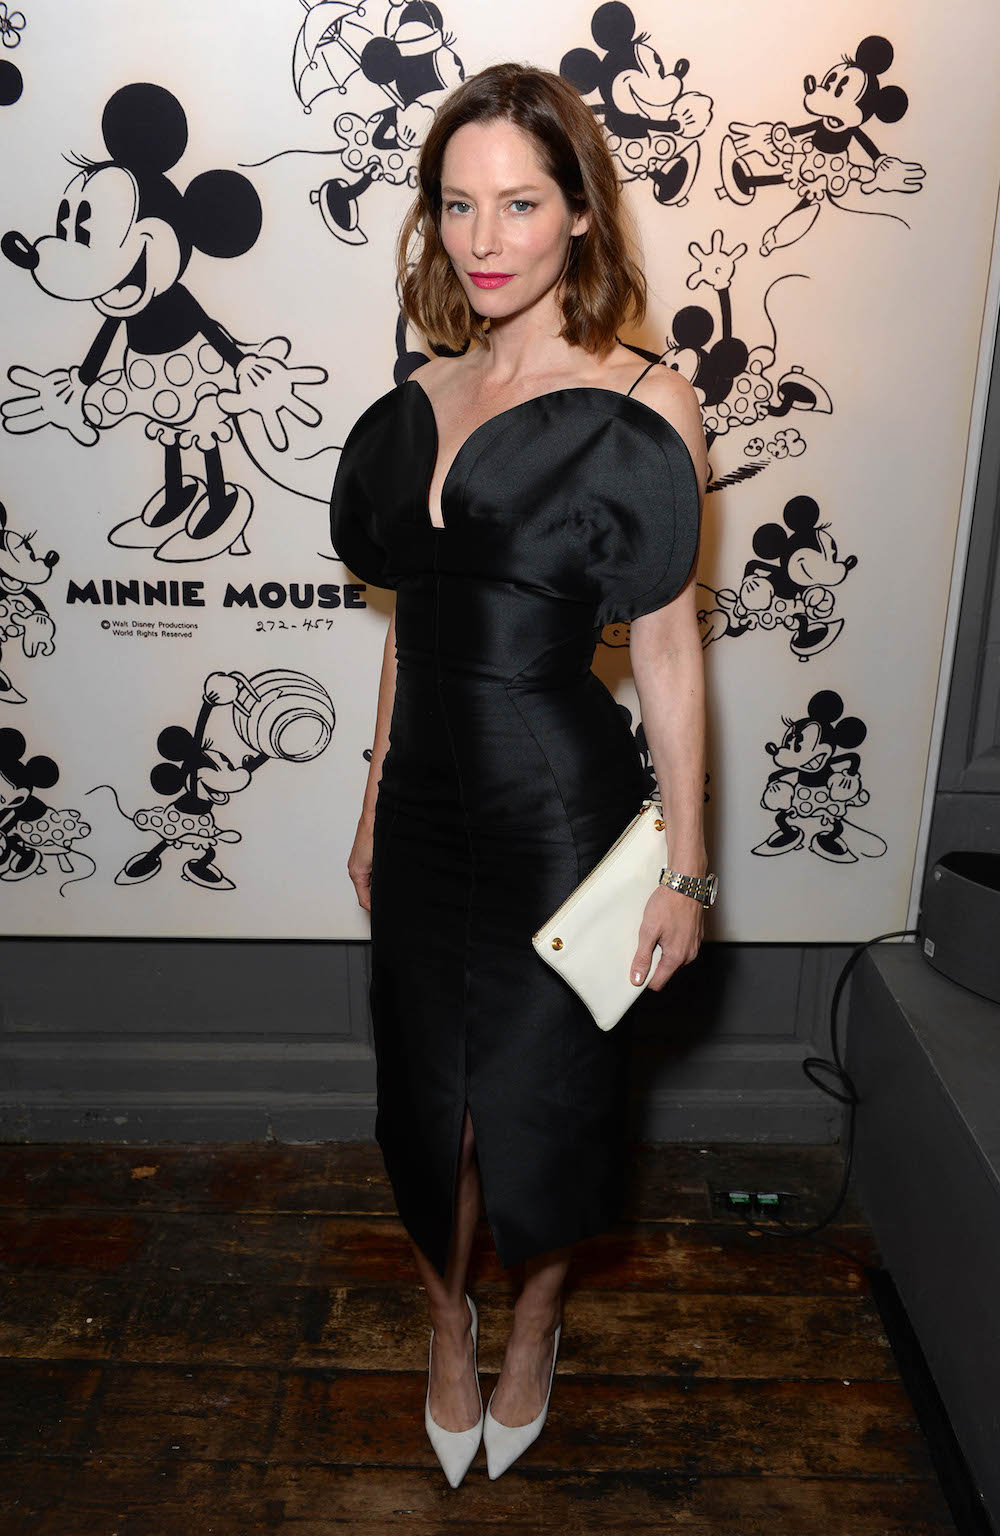 EDITORIAL USE ONLY Sienna Guillory arrives at Blacks Club in London, for the opening of new exhibition, Minnie: Style Icon, in partnership with the British Fashion Council, which will be on display at the Soho venue during London Fashion Week. PRESS ASSOCIATION Photo. Picture date: Friday September 18, 2015. The exhibition of exclusive photographs, exploring the character of Disney's Minnie Mouse and her influence on fashion and pop culture, has been curated with the help of model and photographer, Georgia May Jagger. Photo credit should read: Doug Peters/PA Wire